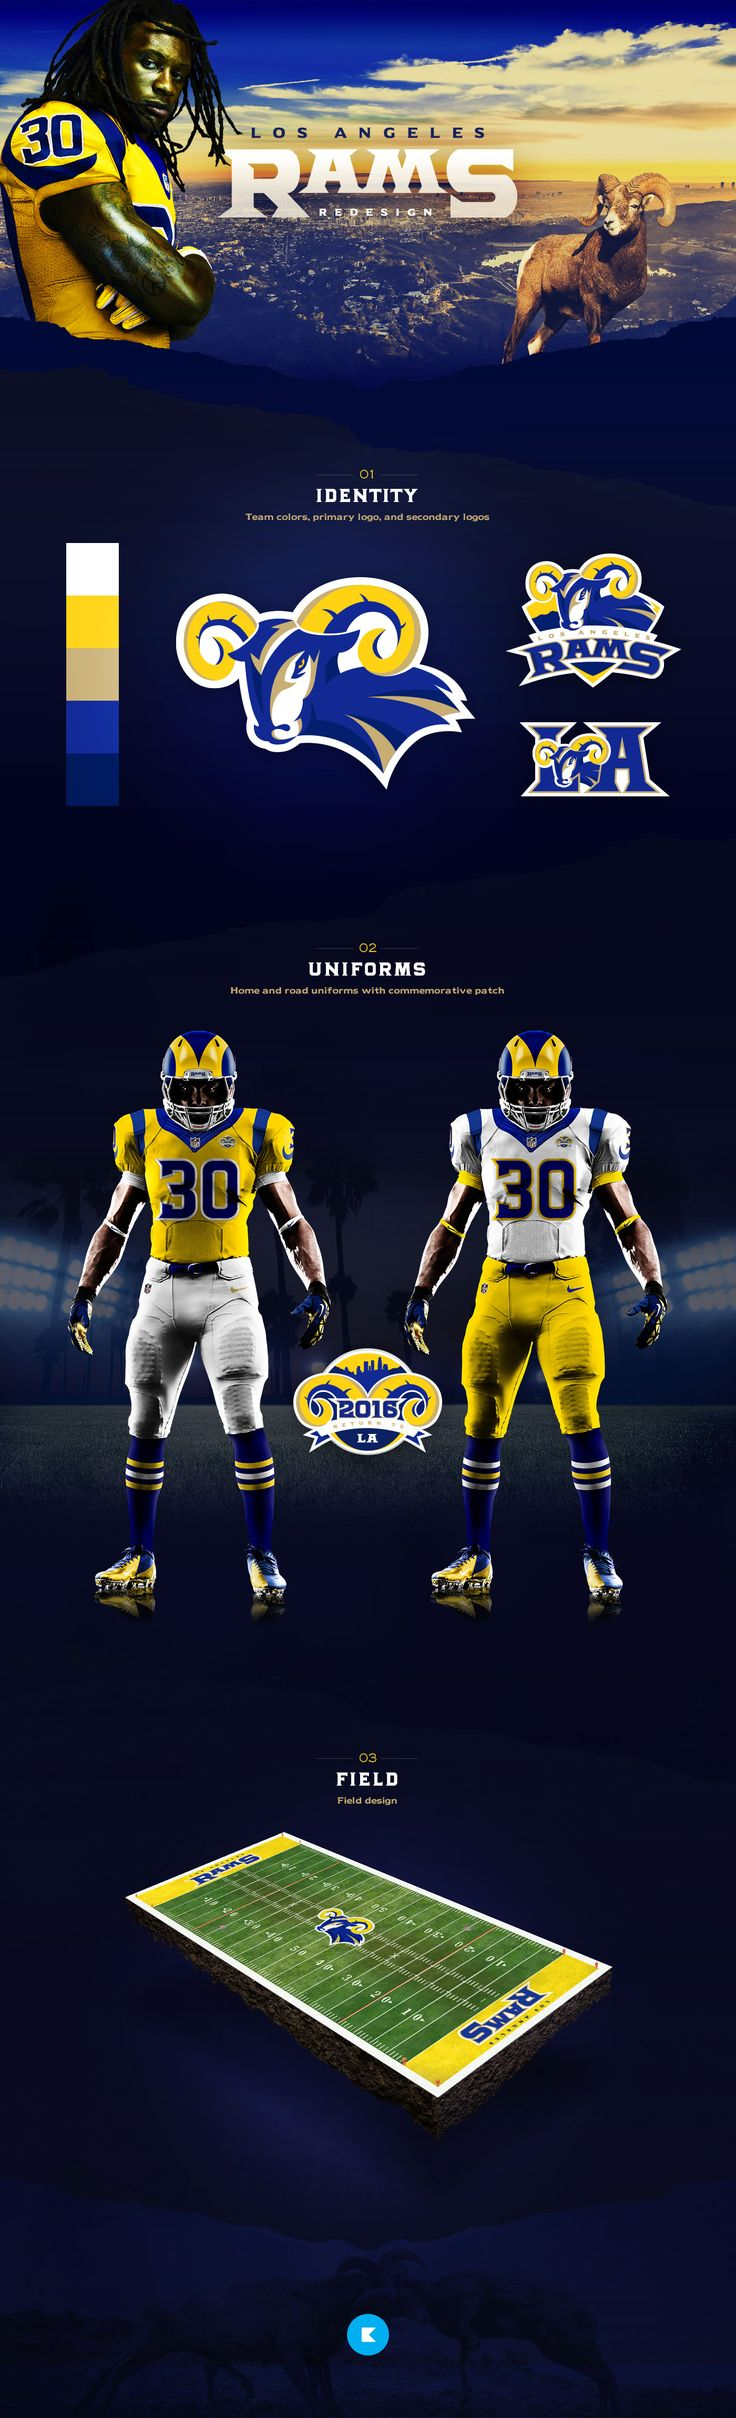 As a welcome back to Los Angeles in 2016, I created an updated look for the Rams. It draws on influences from their past in LA (1946-1994) and also ties in some subtle elements from their stint in St. Louis (1995-2015). Ultimately, I wanted this remixed l…